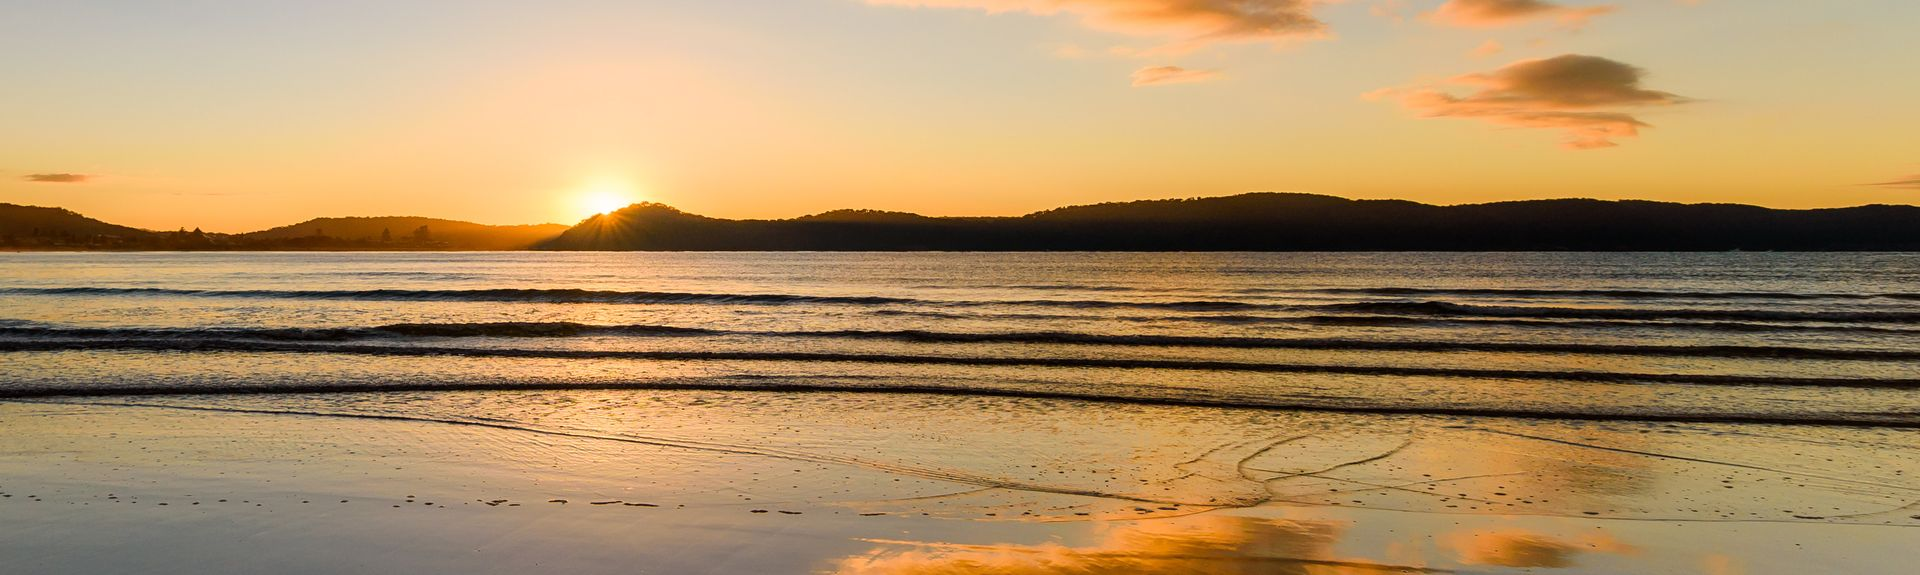 Umina Beach, New South Wales, Australia